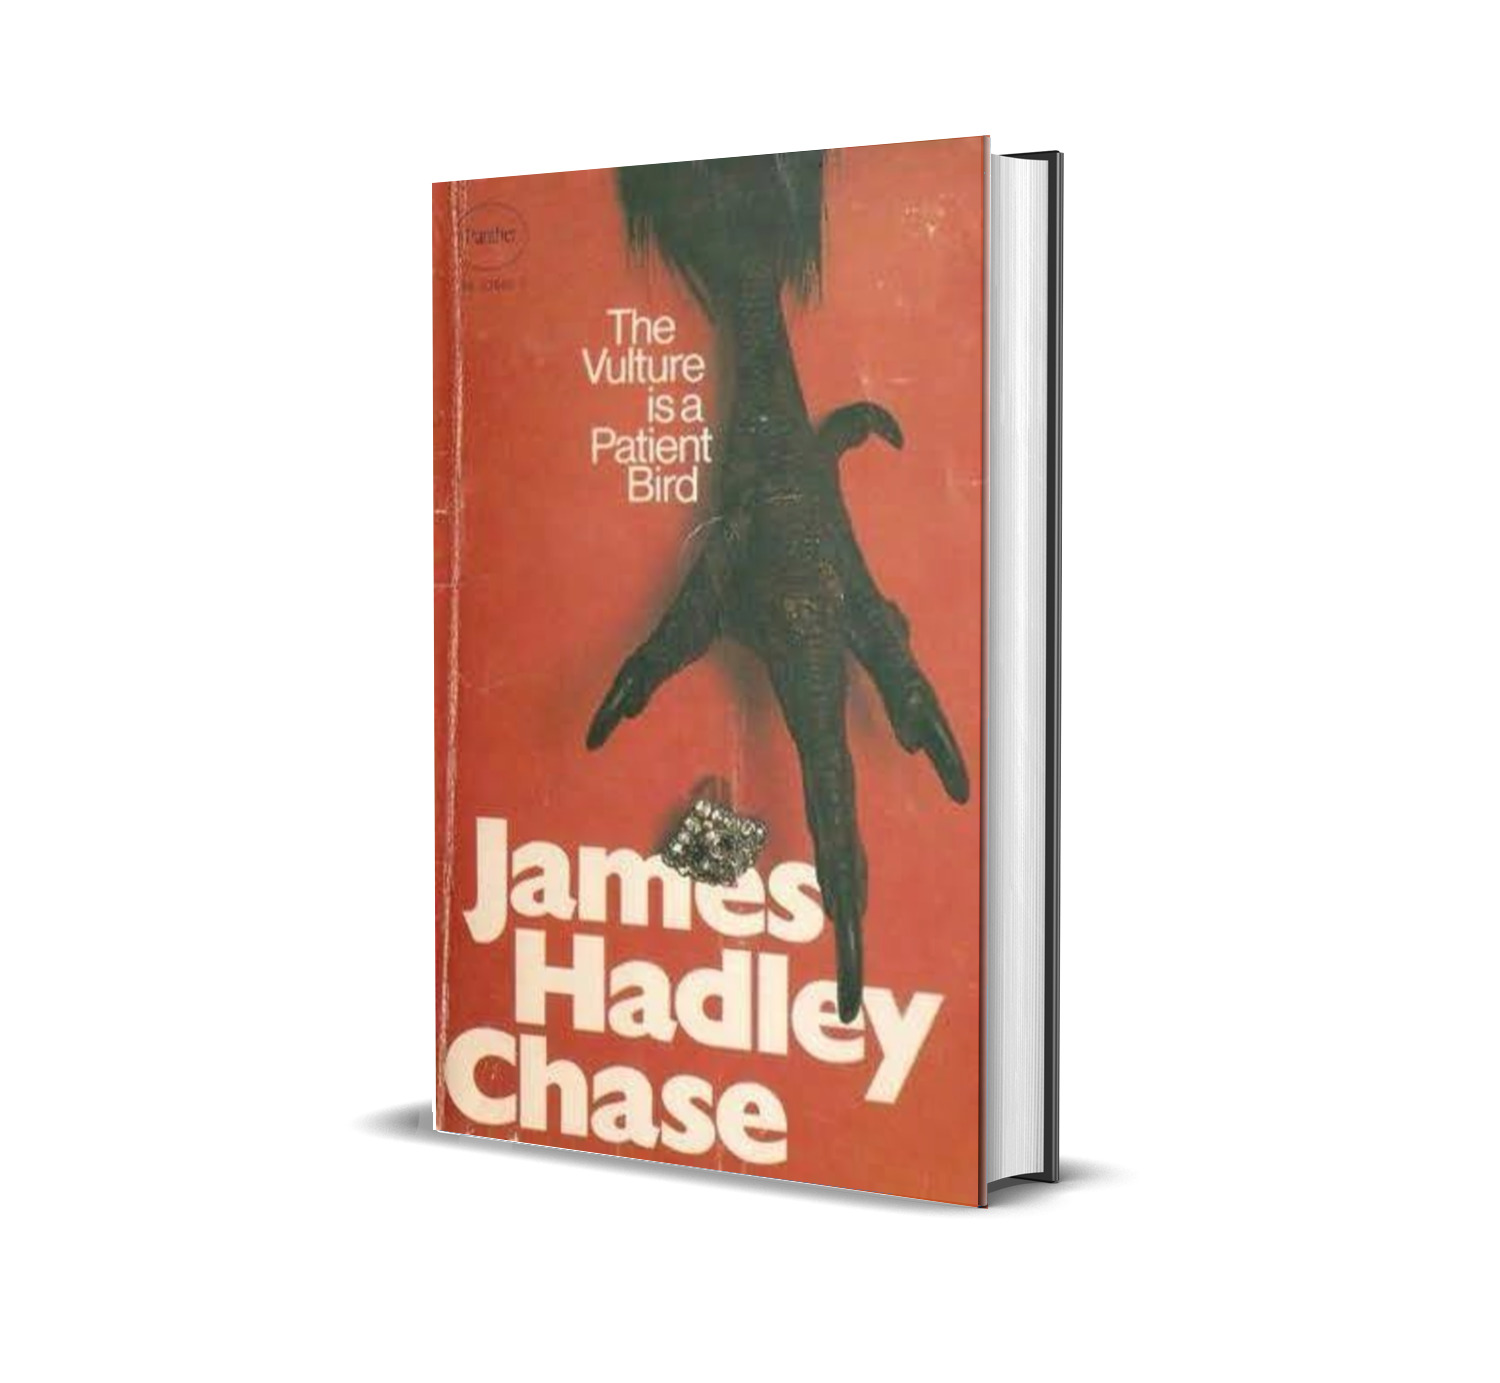 THE VULTURE IS A PATIENT BIRD JAMES HADLEY CHASE